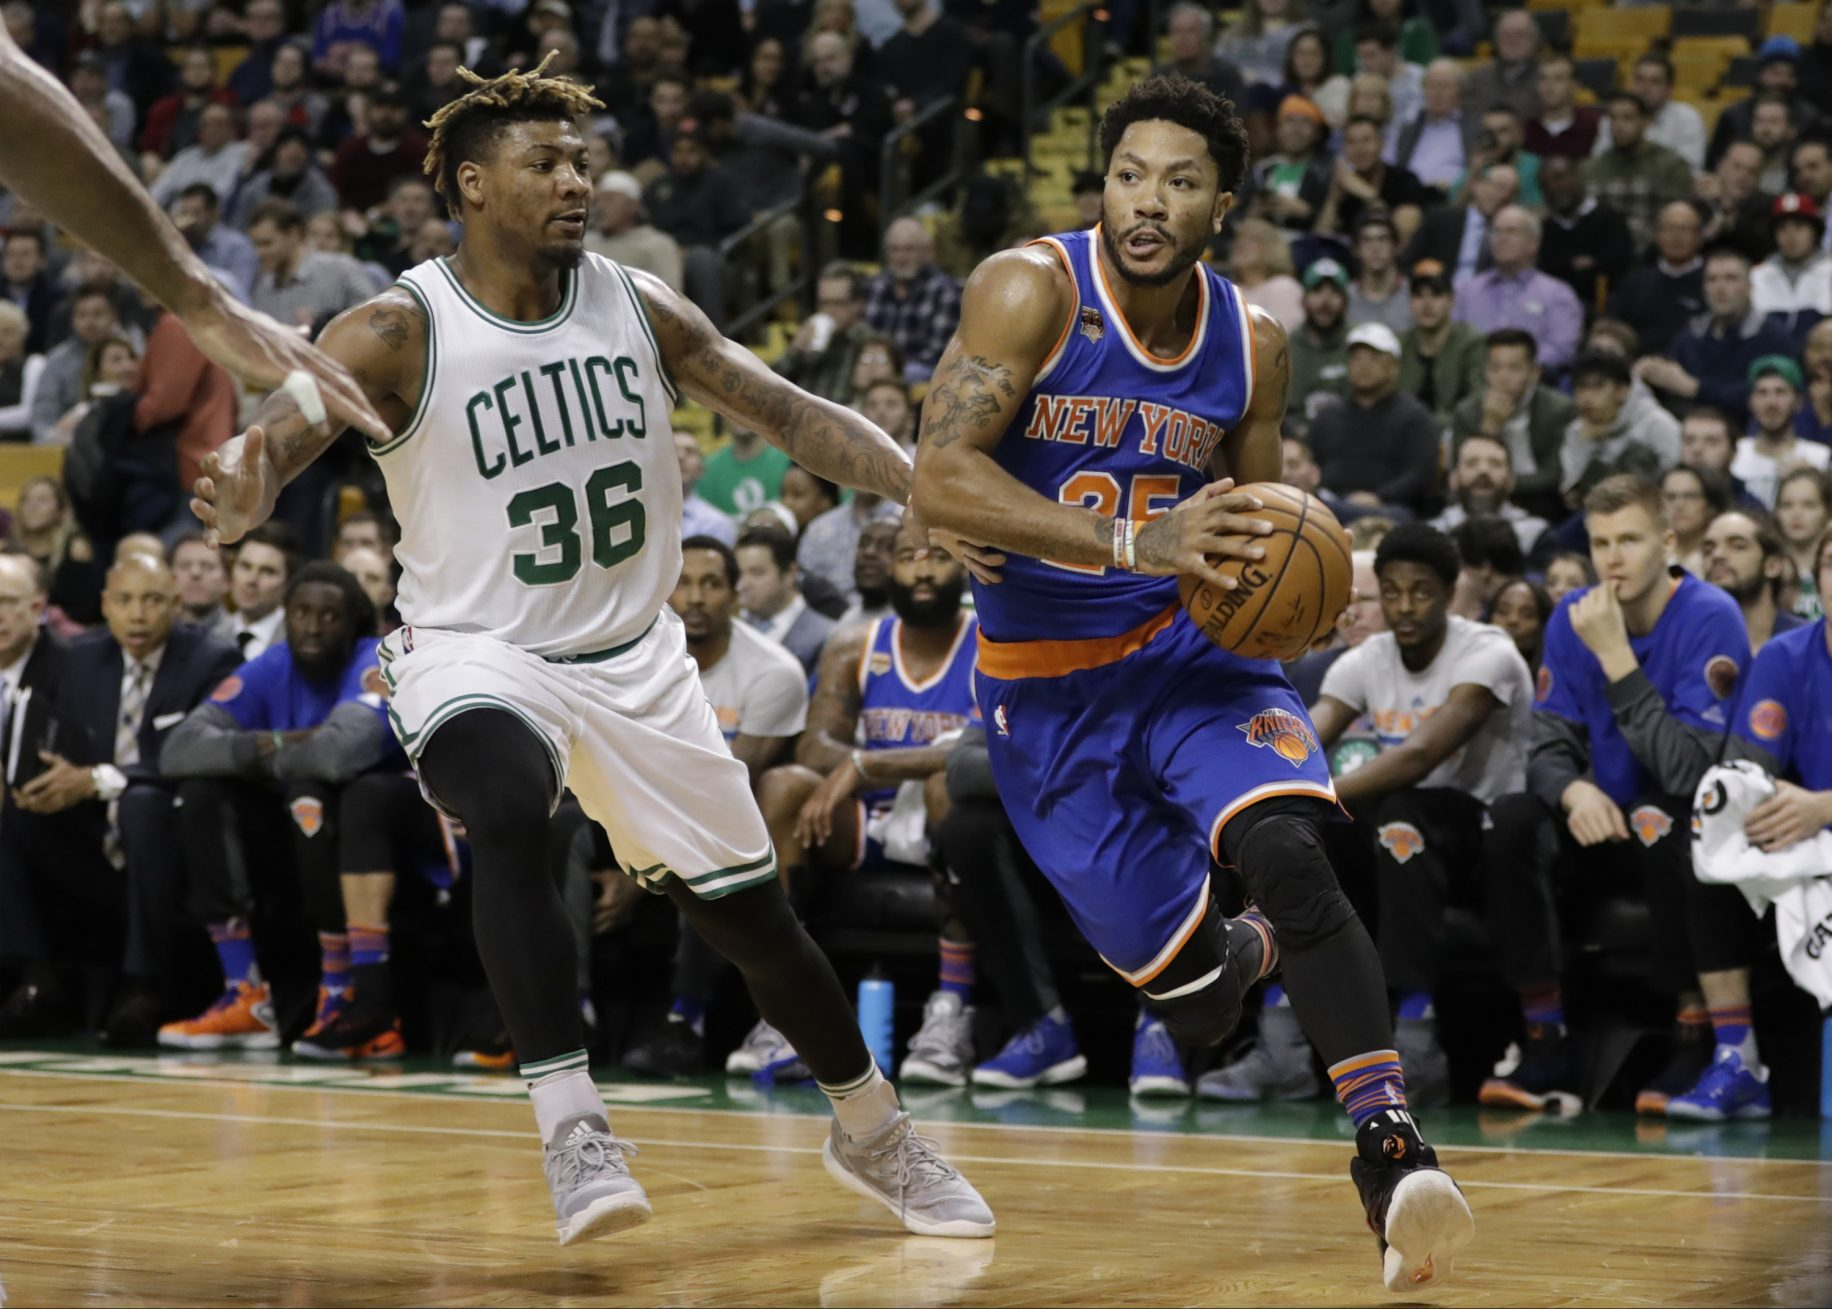 Derrick Rose just isn't worth the trouble or money for the New York Knicks